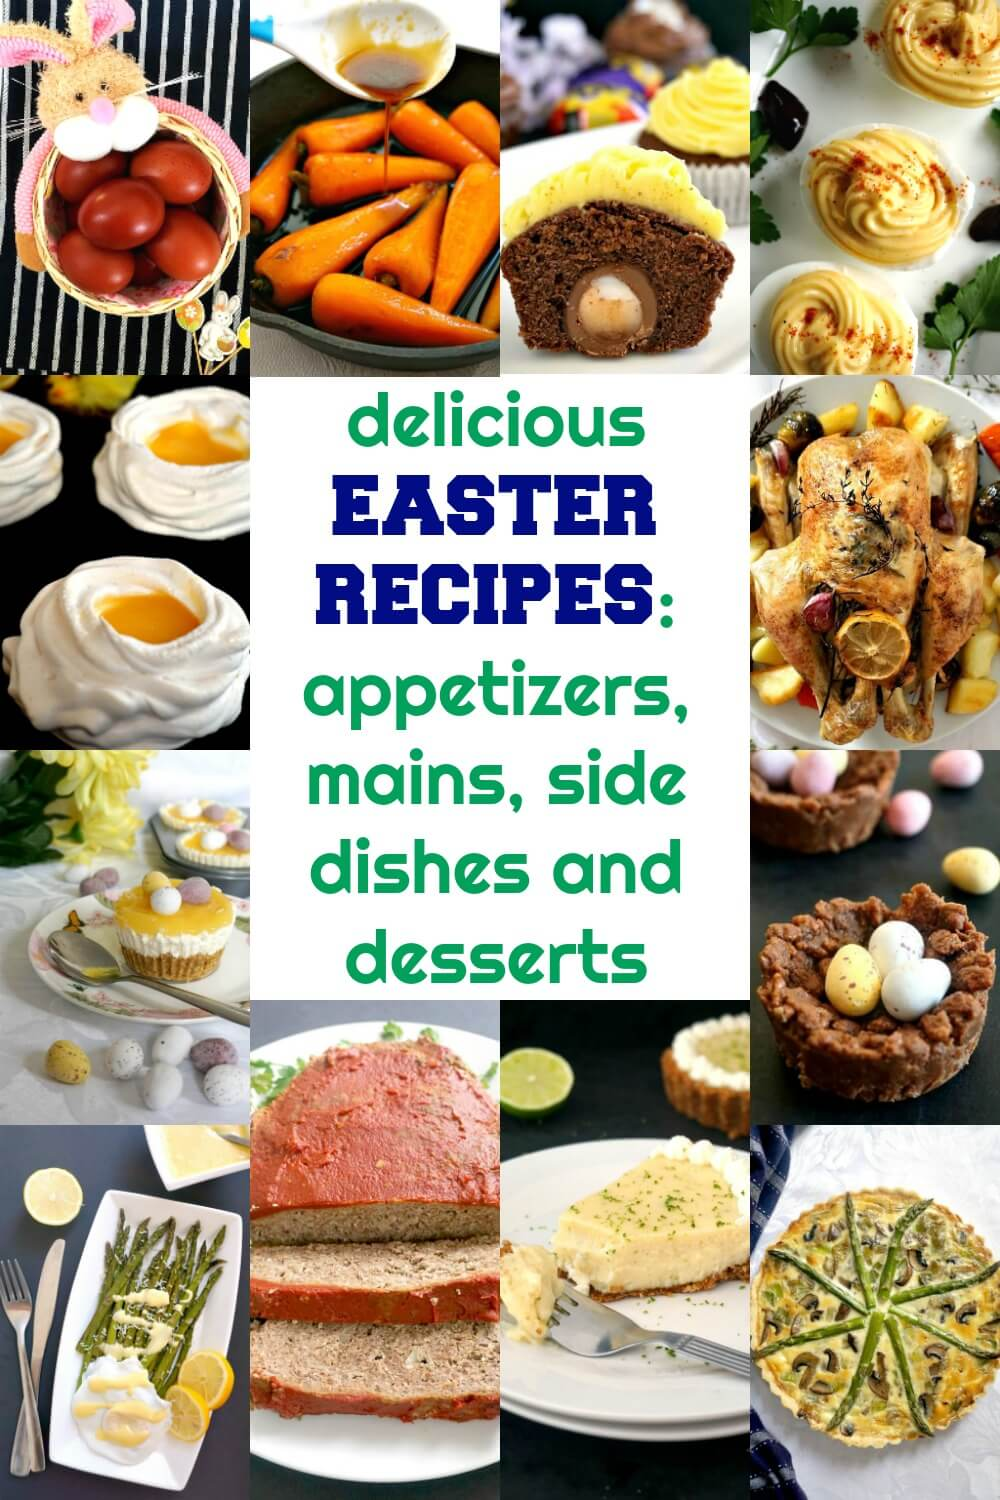 These fabulous Easter Food ideas cater for all tastes, they are extremely delicious and easy to make. From appetizers, to main courses, side dishes and desserts, there are recipes for everyone to enjoy.